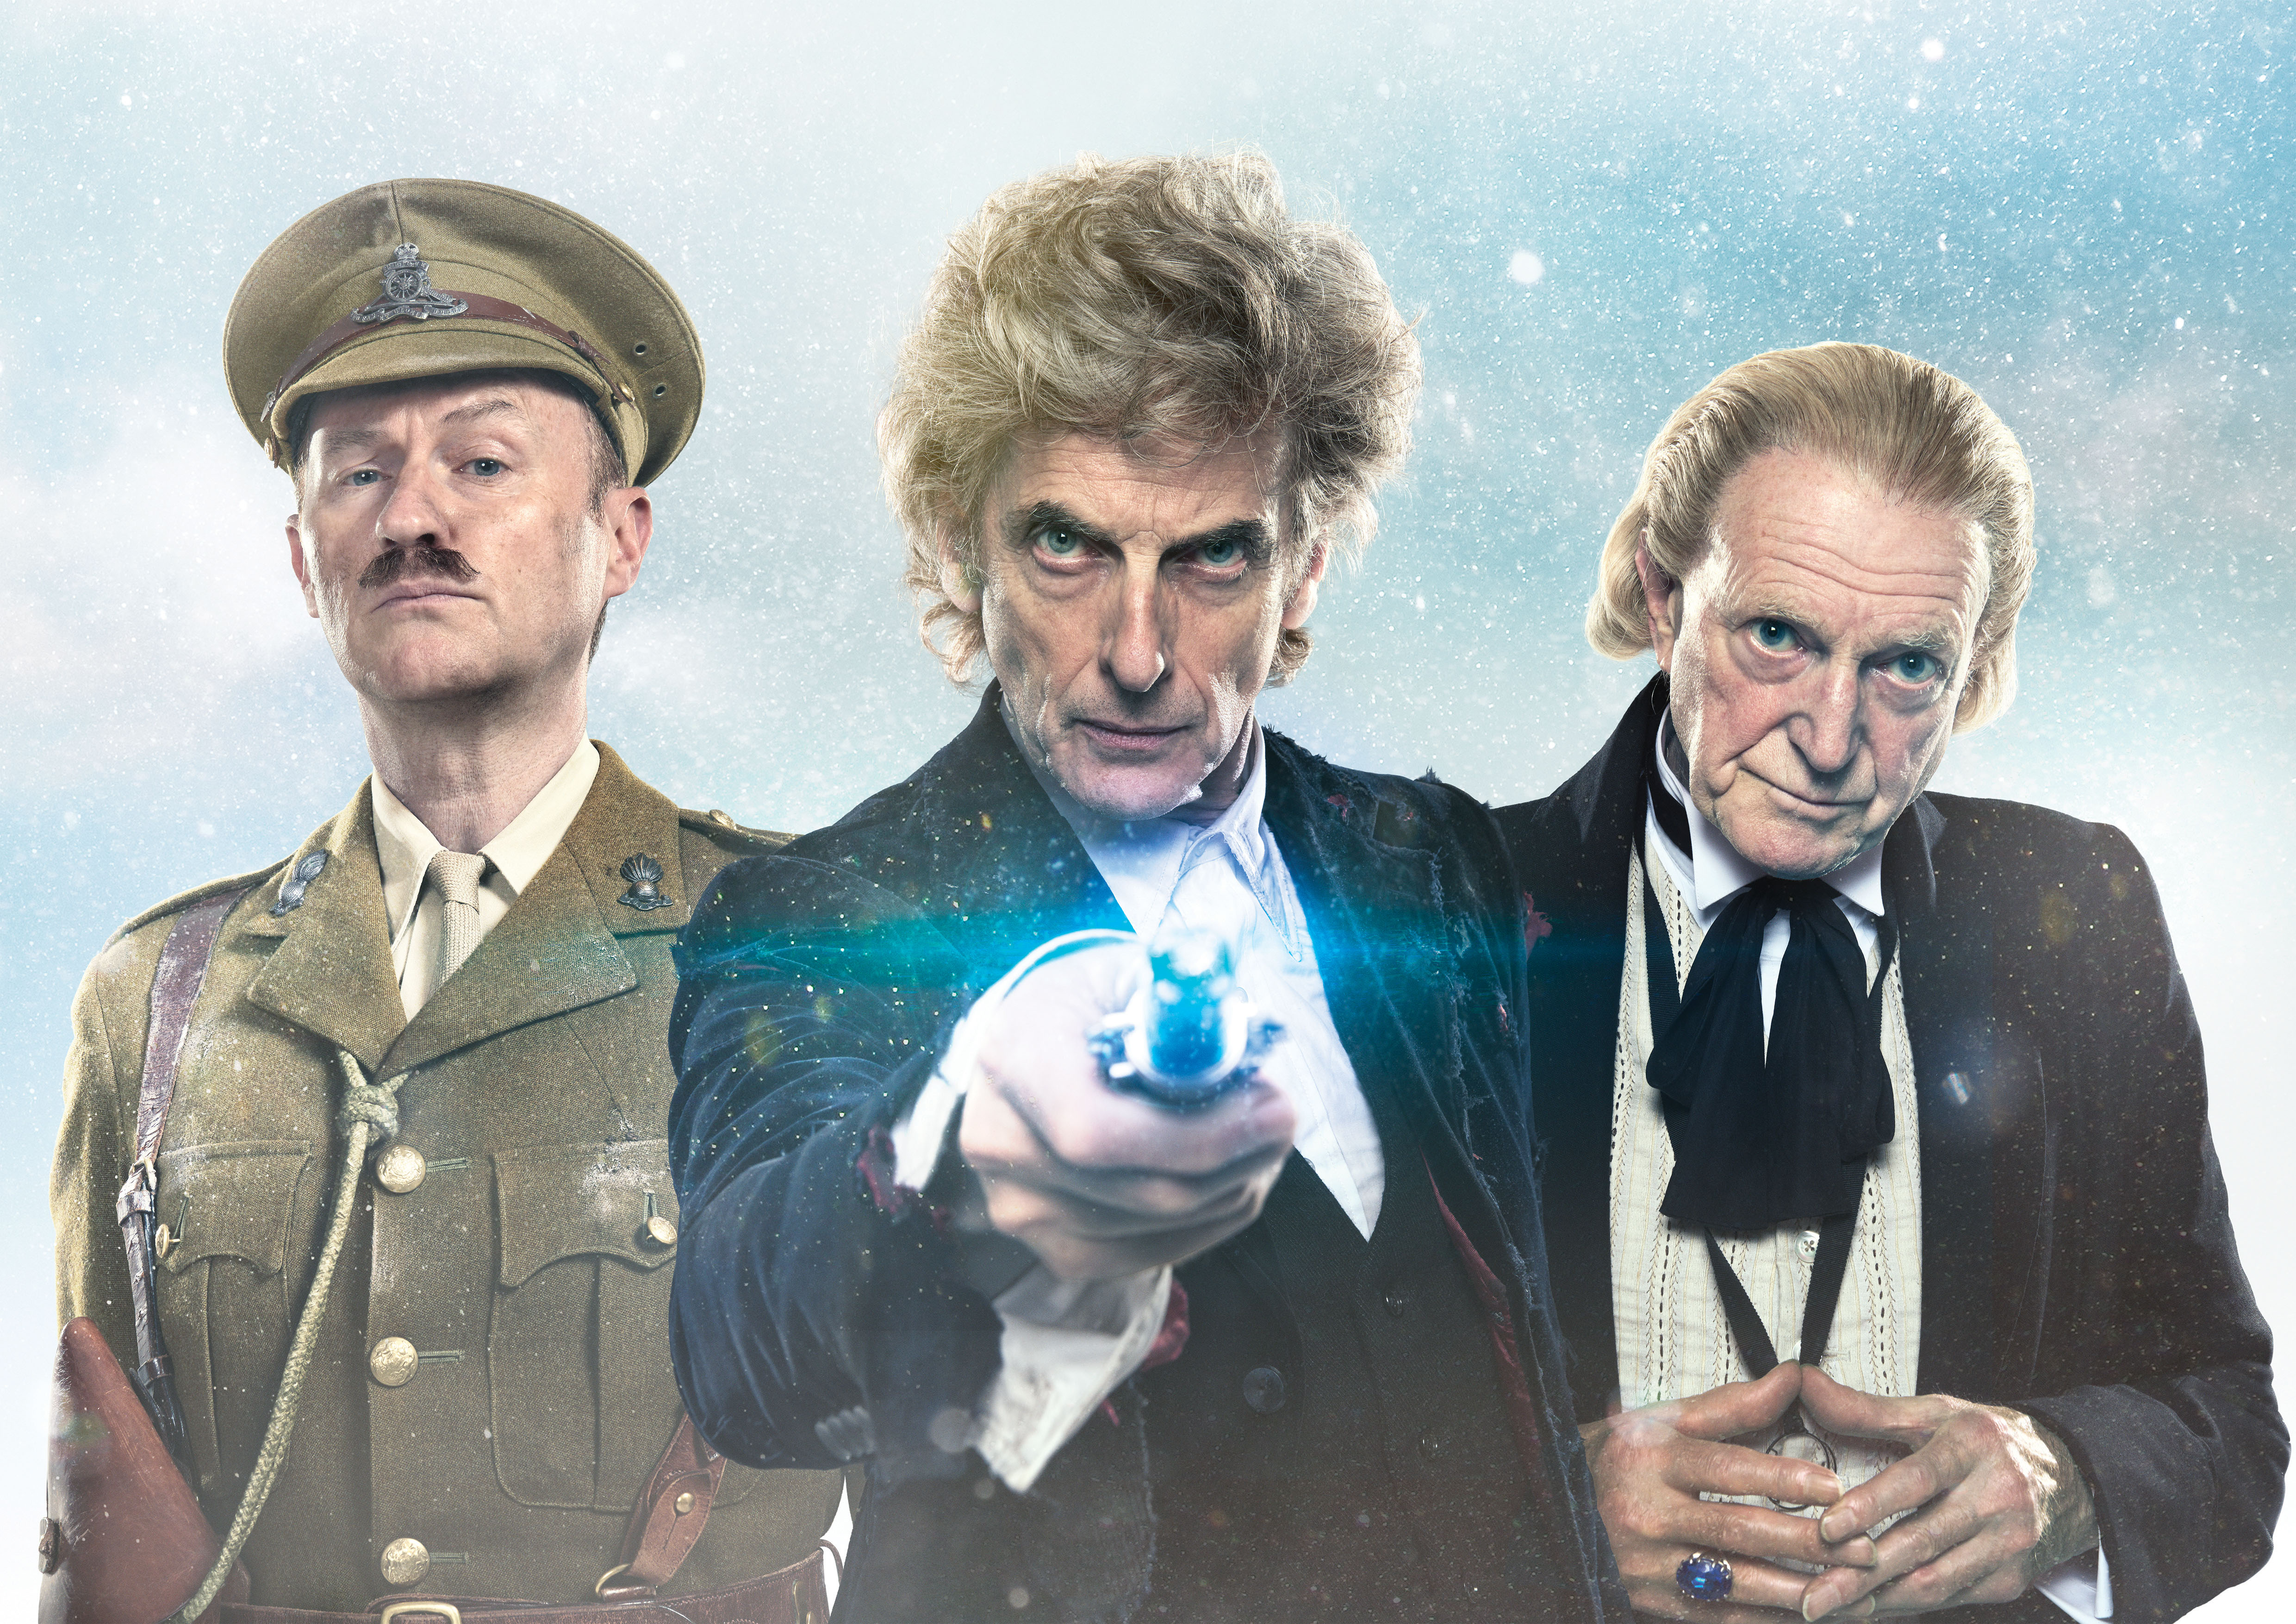 Doctor Who Christmas Special.Doctor Who Christmas Special To Premiere Early December In